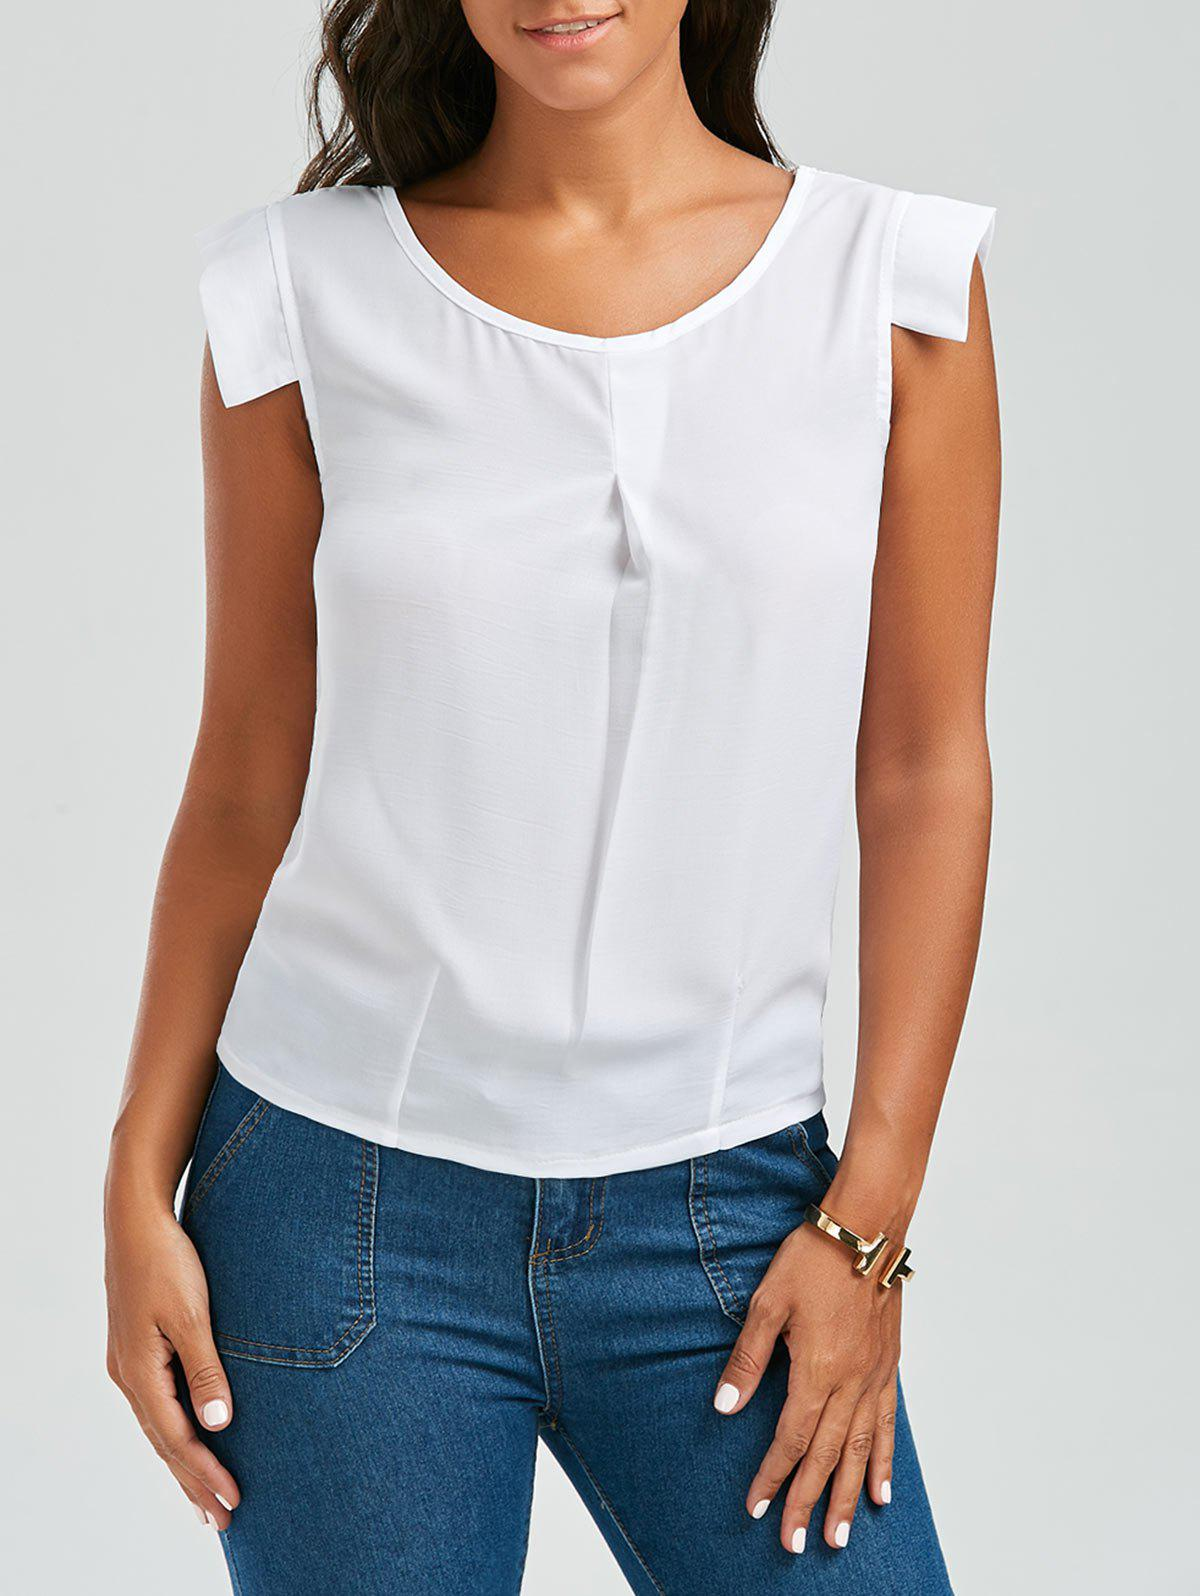 Outfit Brief Scoop Neck White Sleeveless Chiffon Blouse For Women